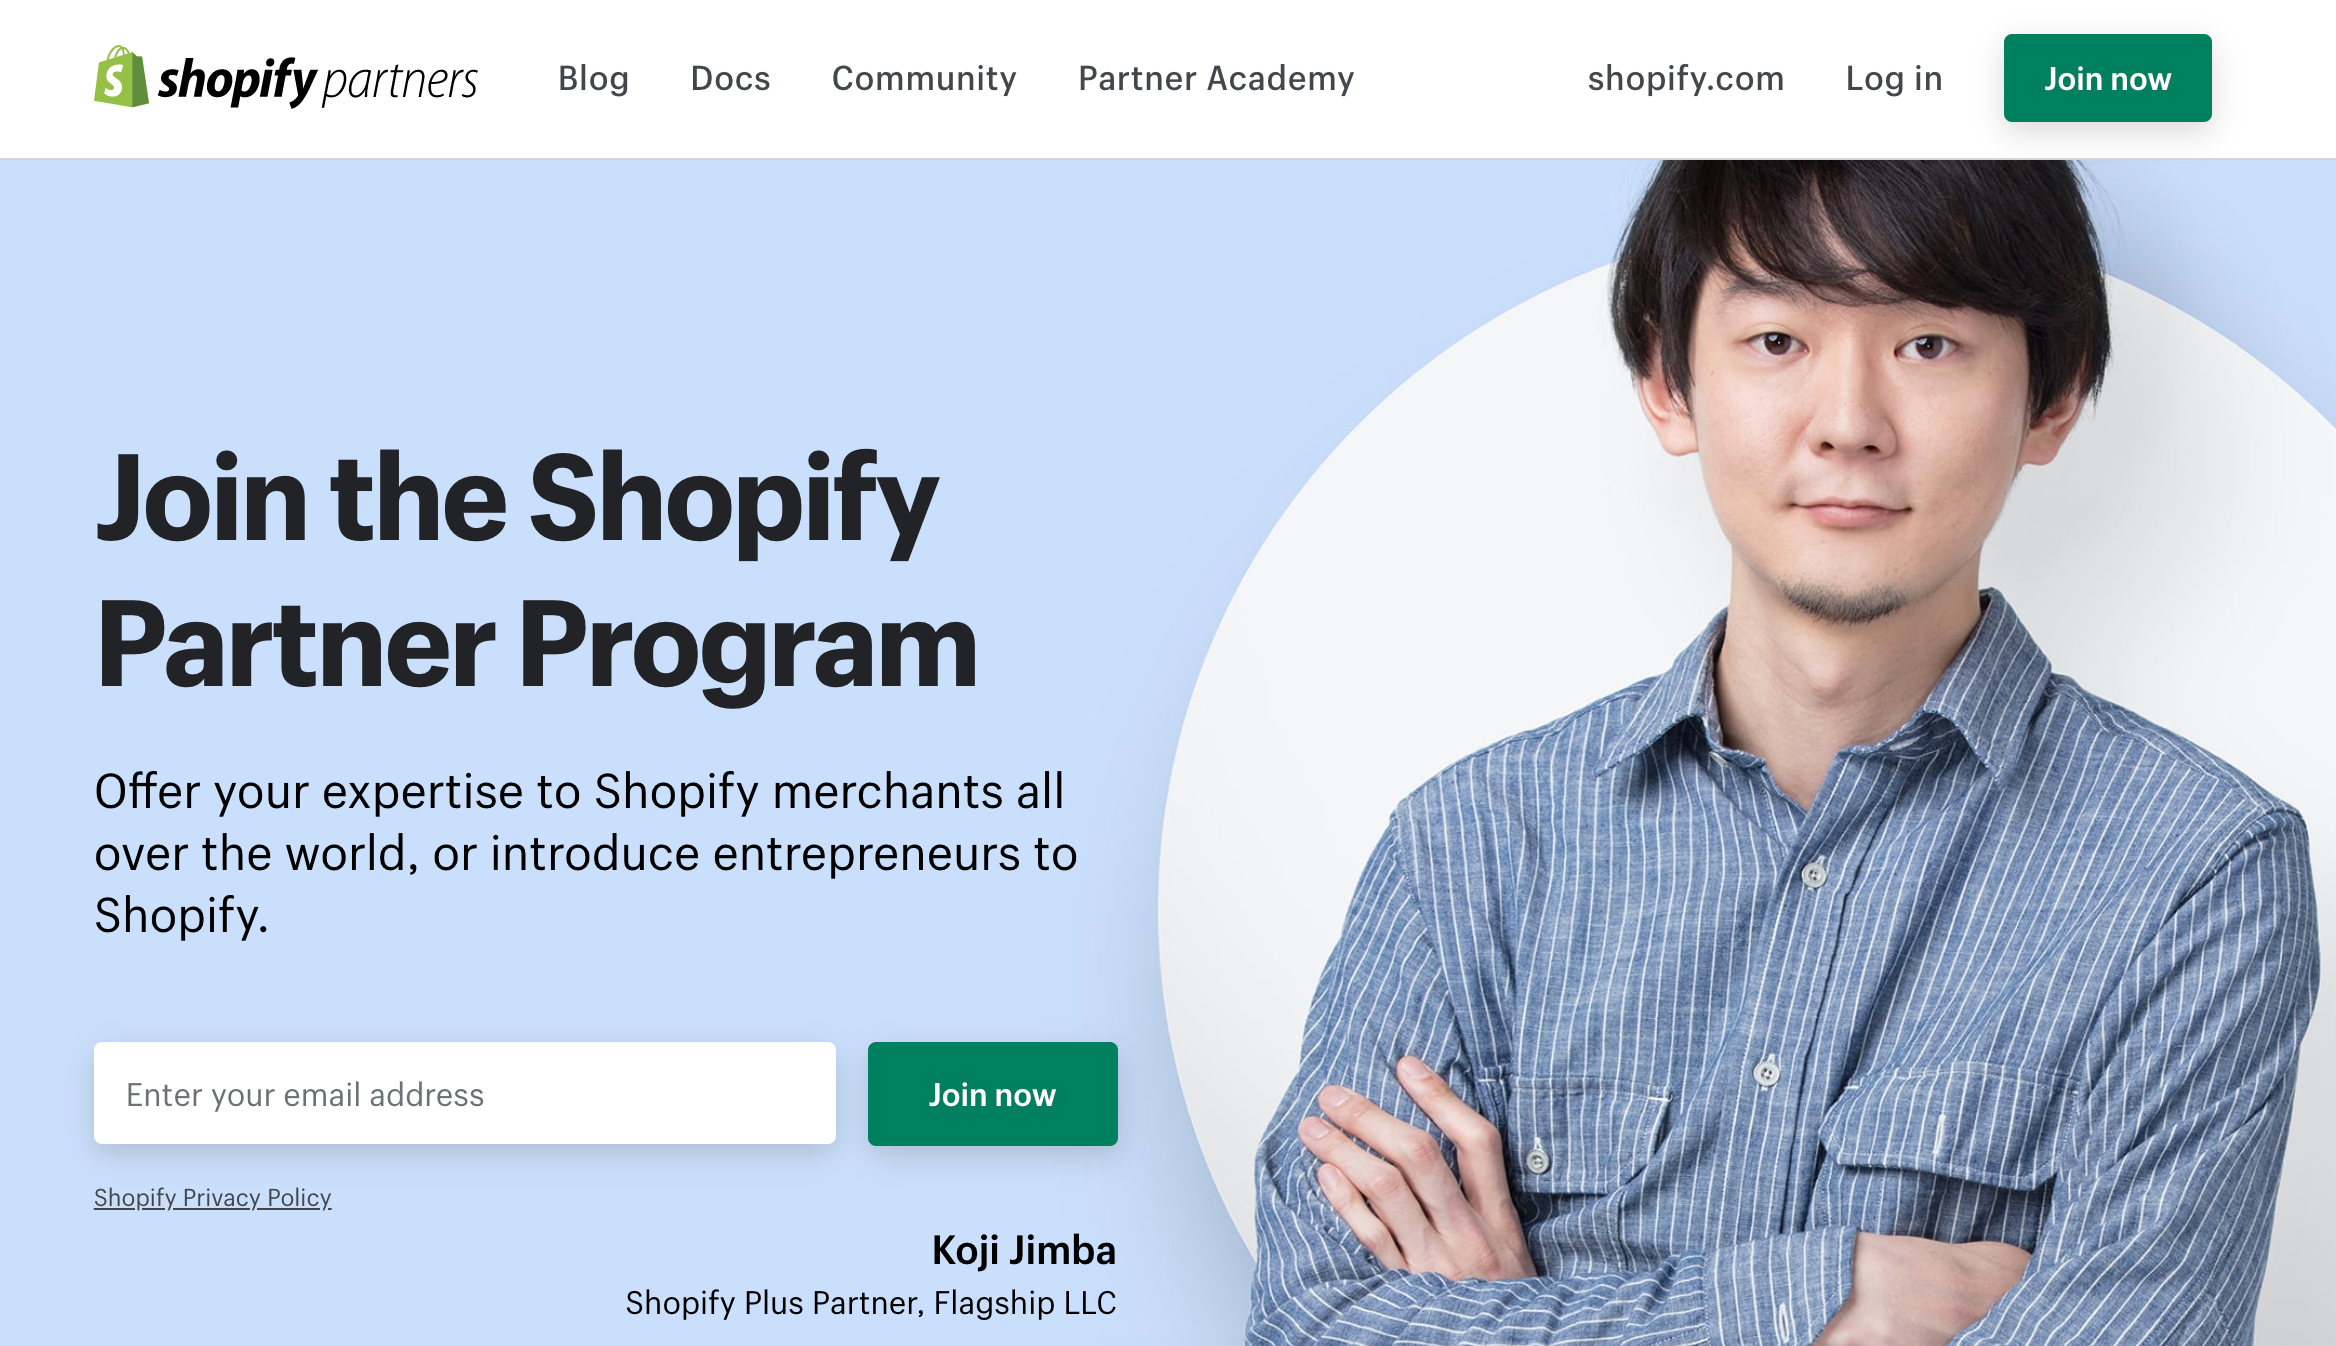 shopify partners website homepage